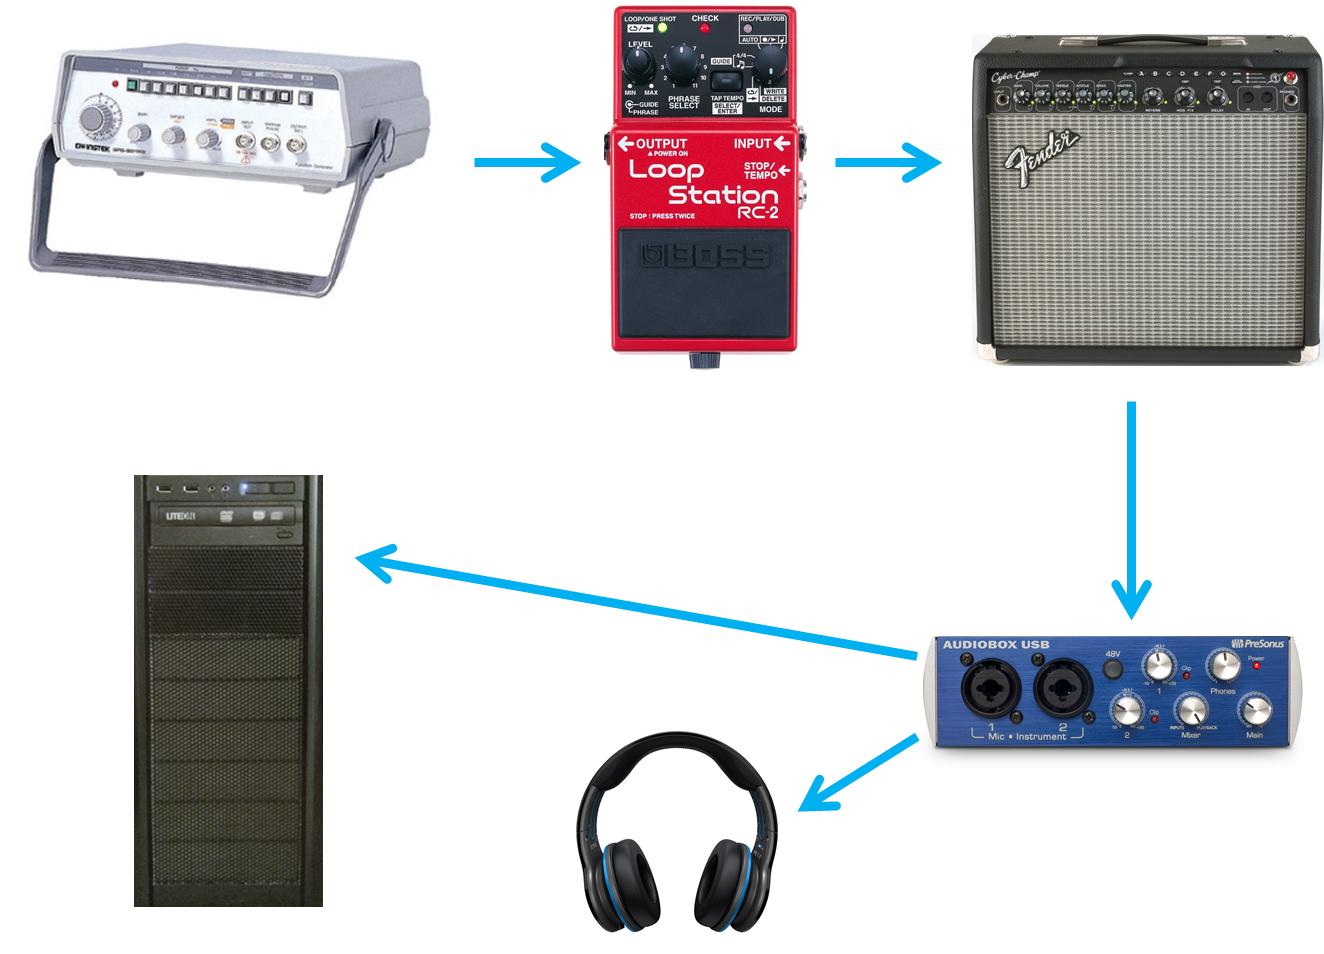 Clockwise from top left: (1) GW GFG-8015G function generator, (2) Boss RC-2 Loop Station, (3) Fender Cyber Champ amp, (4) Presonus AudioBox USB interface, (5) headphones, (6) PC.